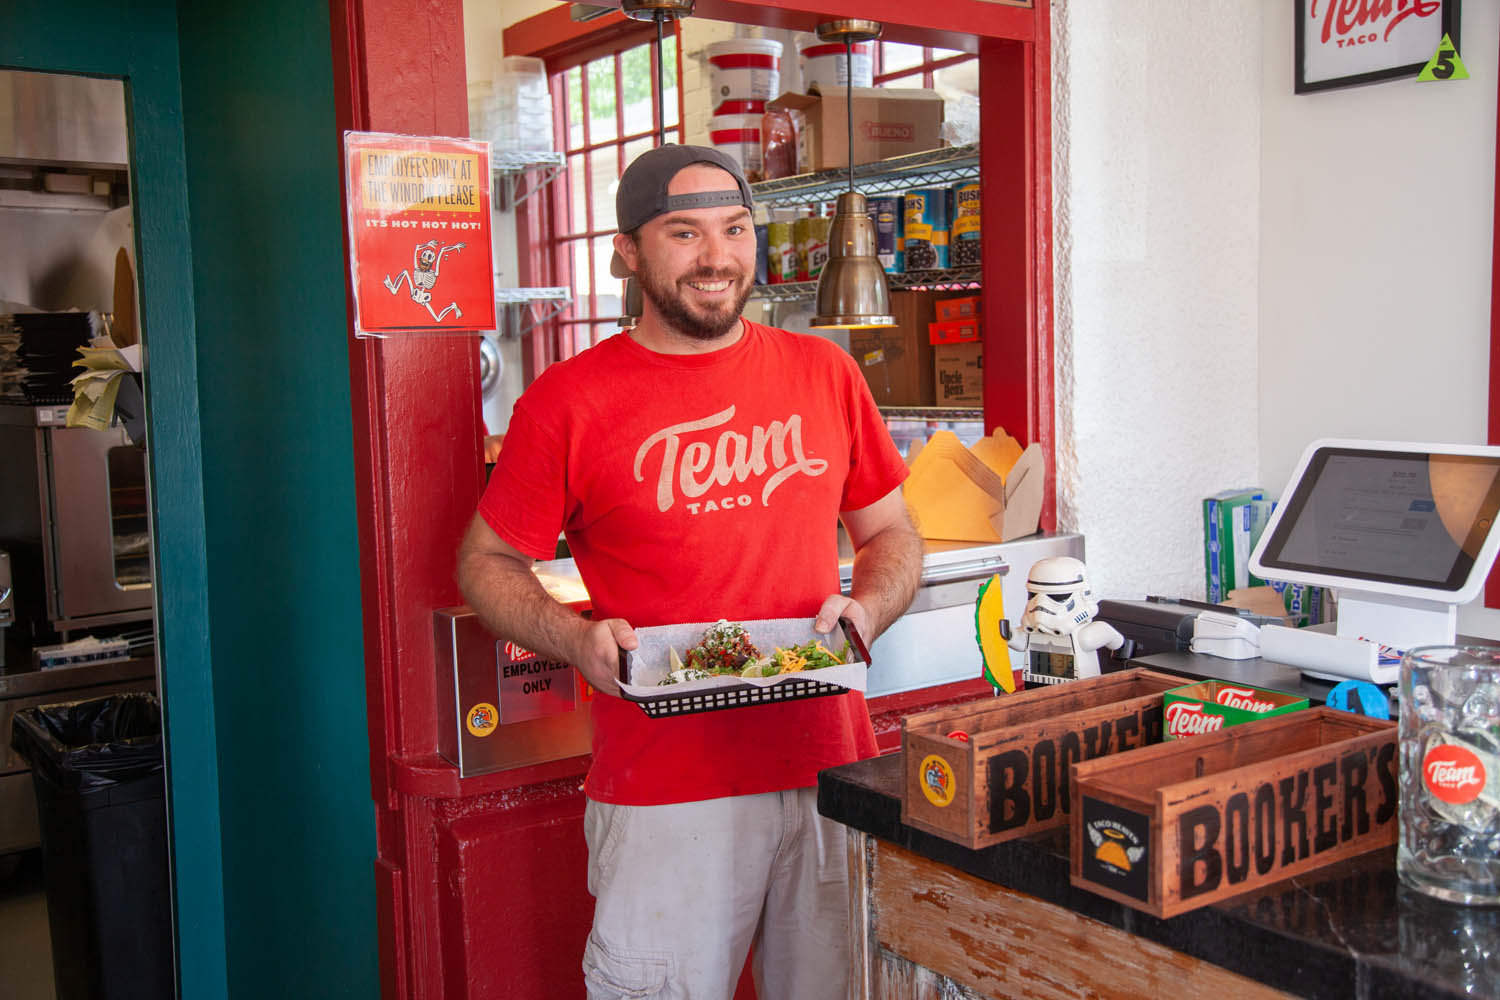 Co-owner Cary Harris opened Team Taco in August.